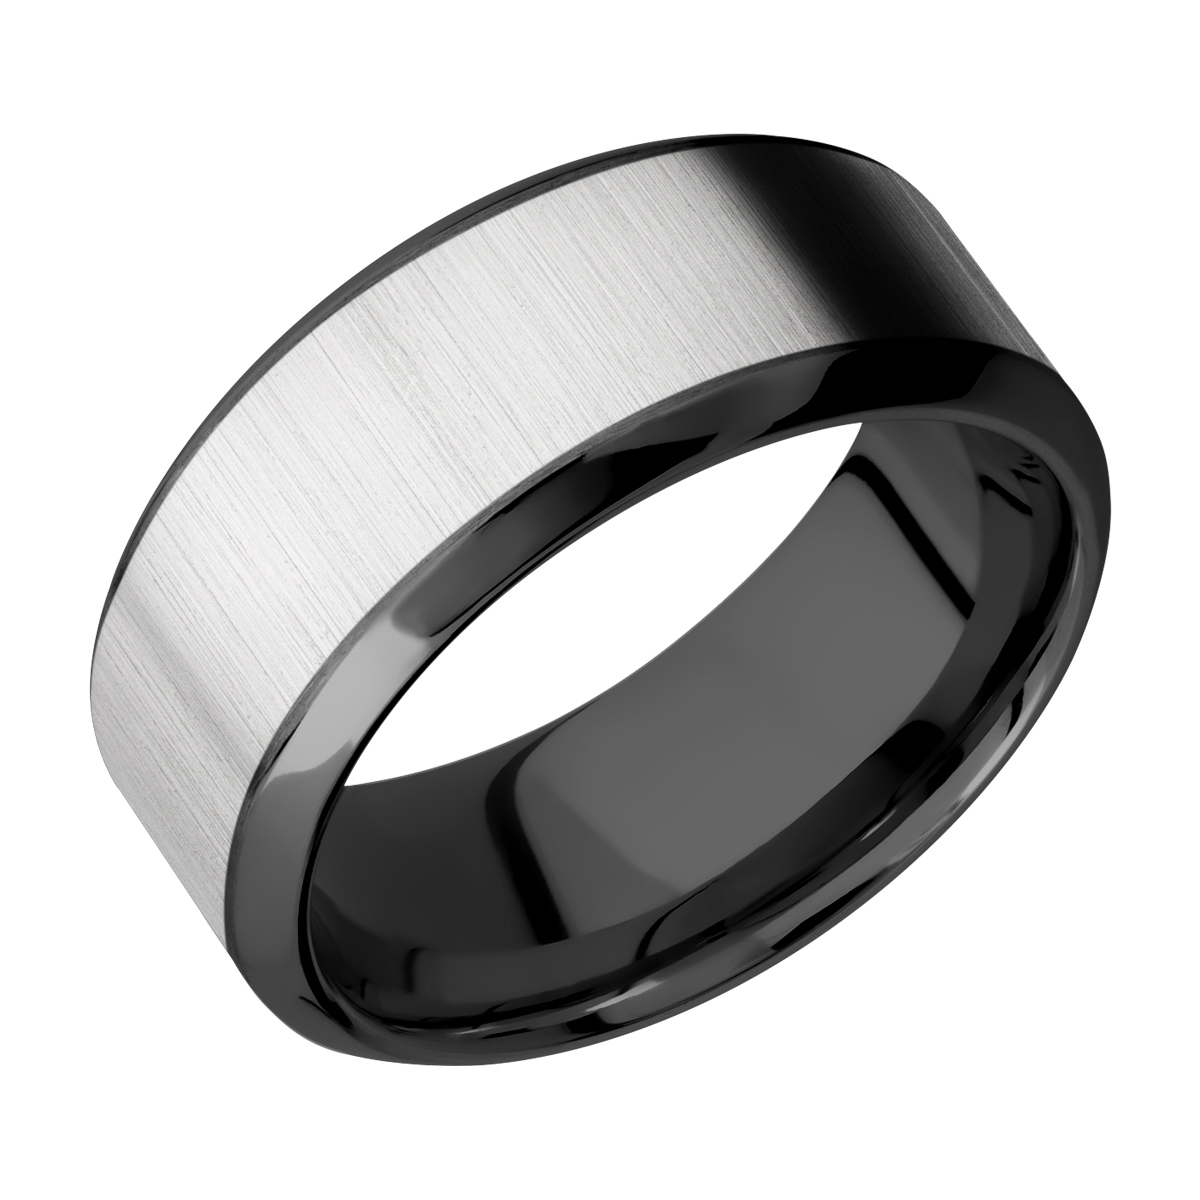 Lashbrook ZPF9HB16/TITANIUM Zirconium Wedding Ring or Band